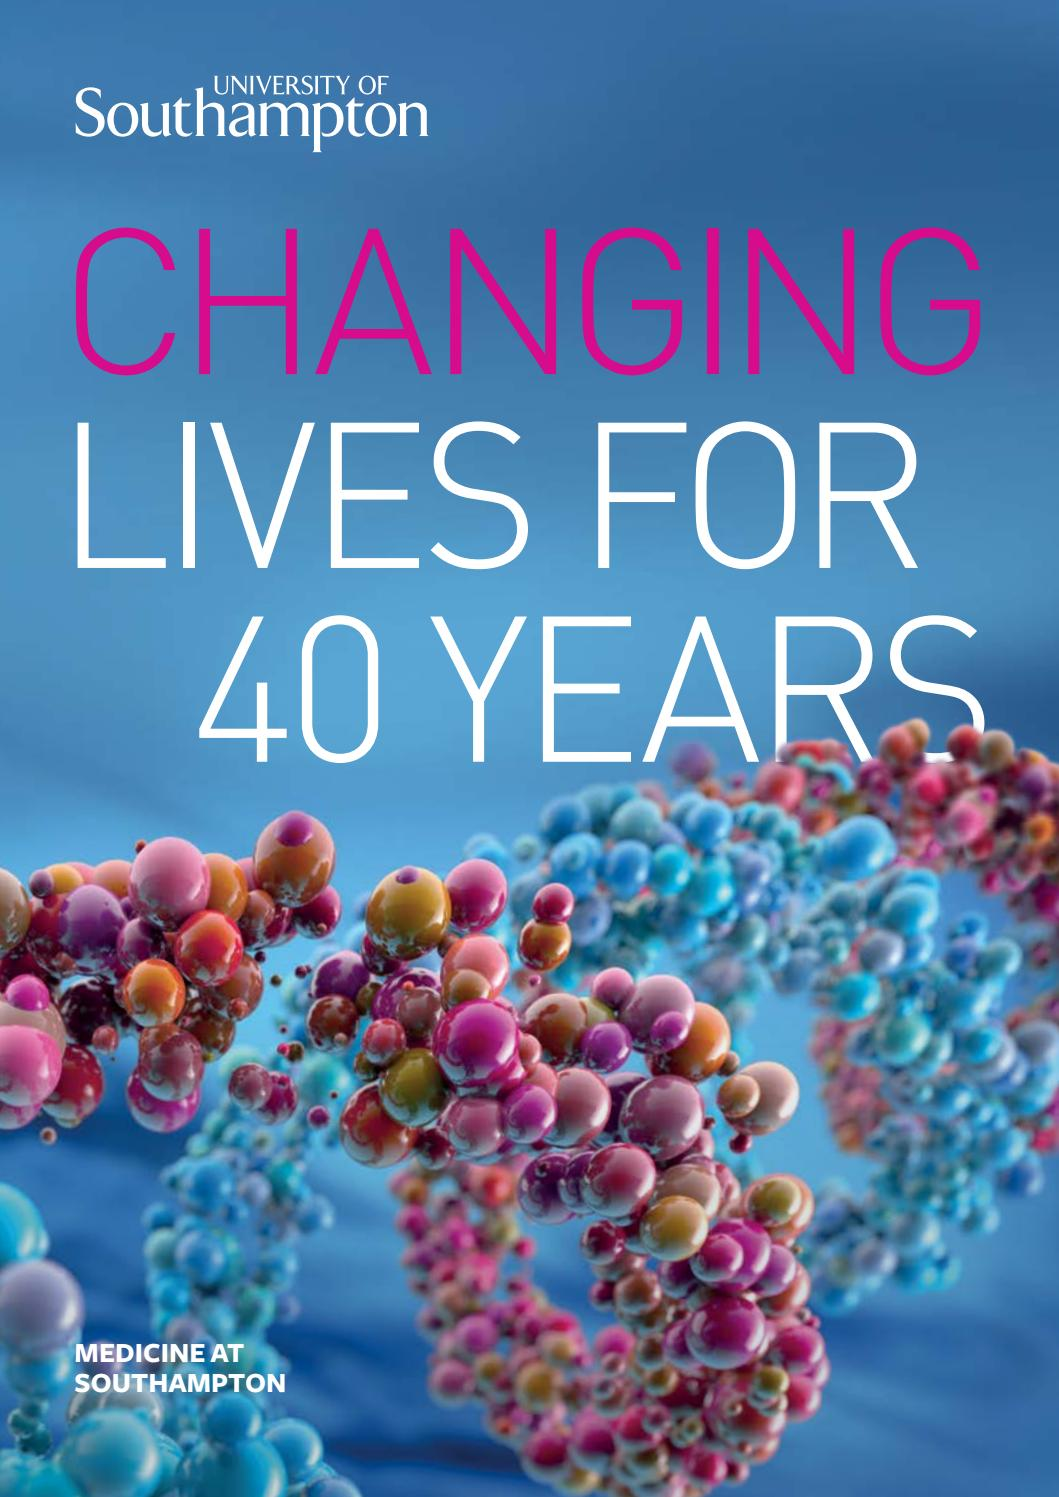 Medicine at Southampton, 40 years of changing lives by